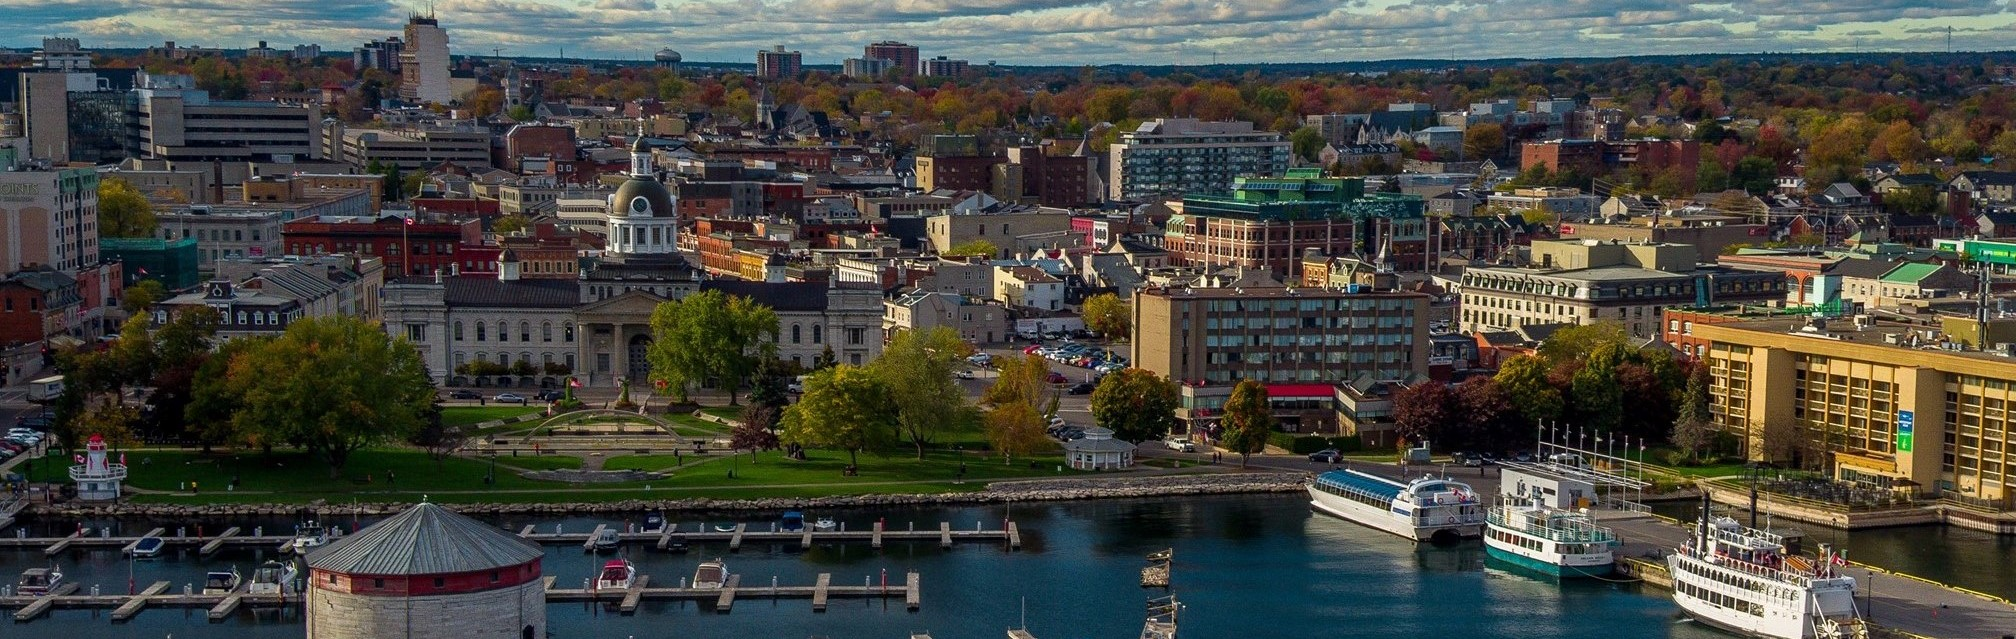 Kingston waterfront_by @DroneKingston